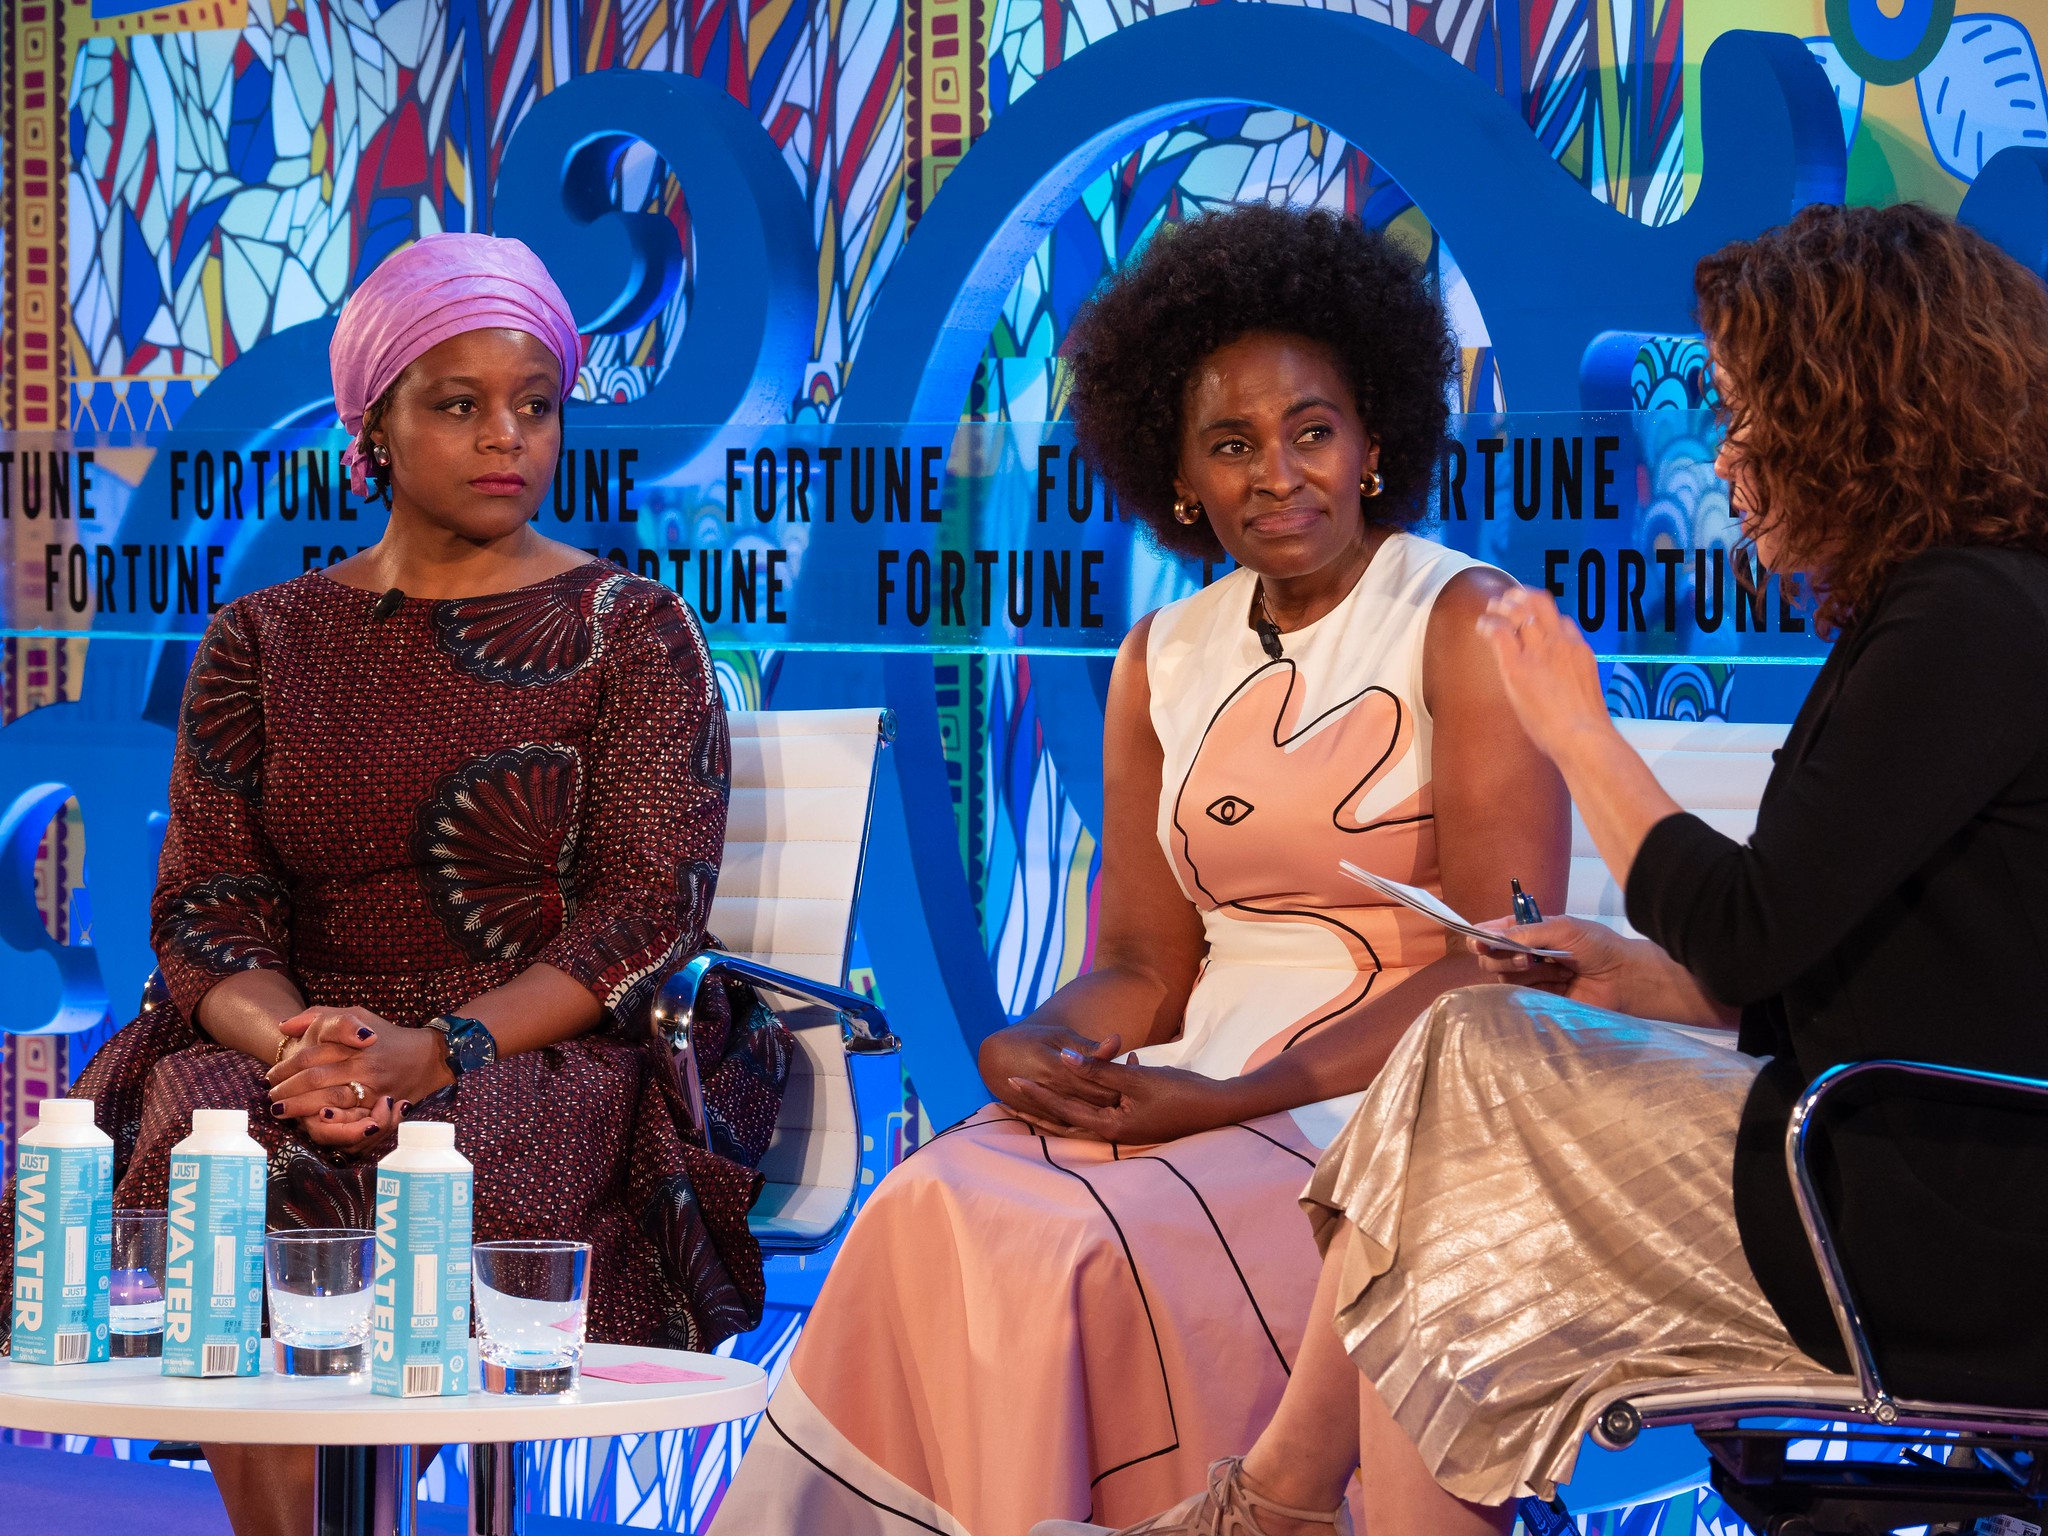 Viola Llewellyn, co-founder and president of Ovamba Solutions, and Nunu Ntshingila, Facebook's head of Africa, speak at Fortune Most Powerful Women International in London.